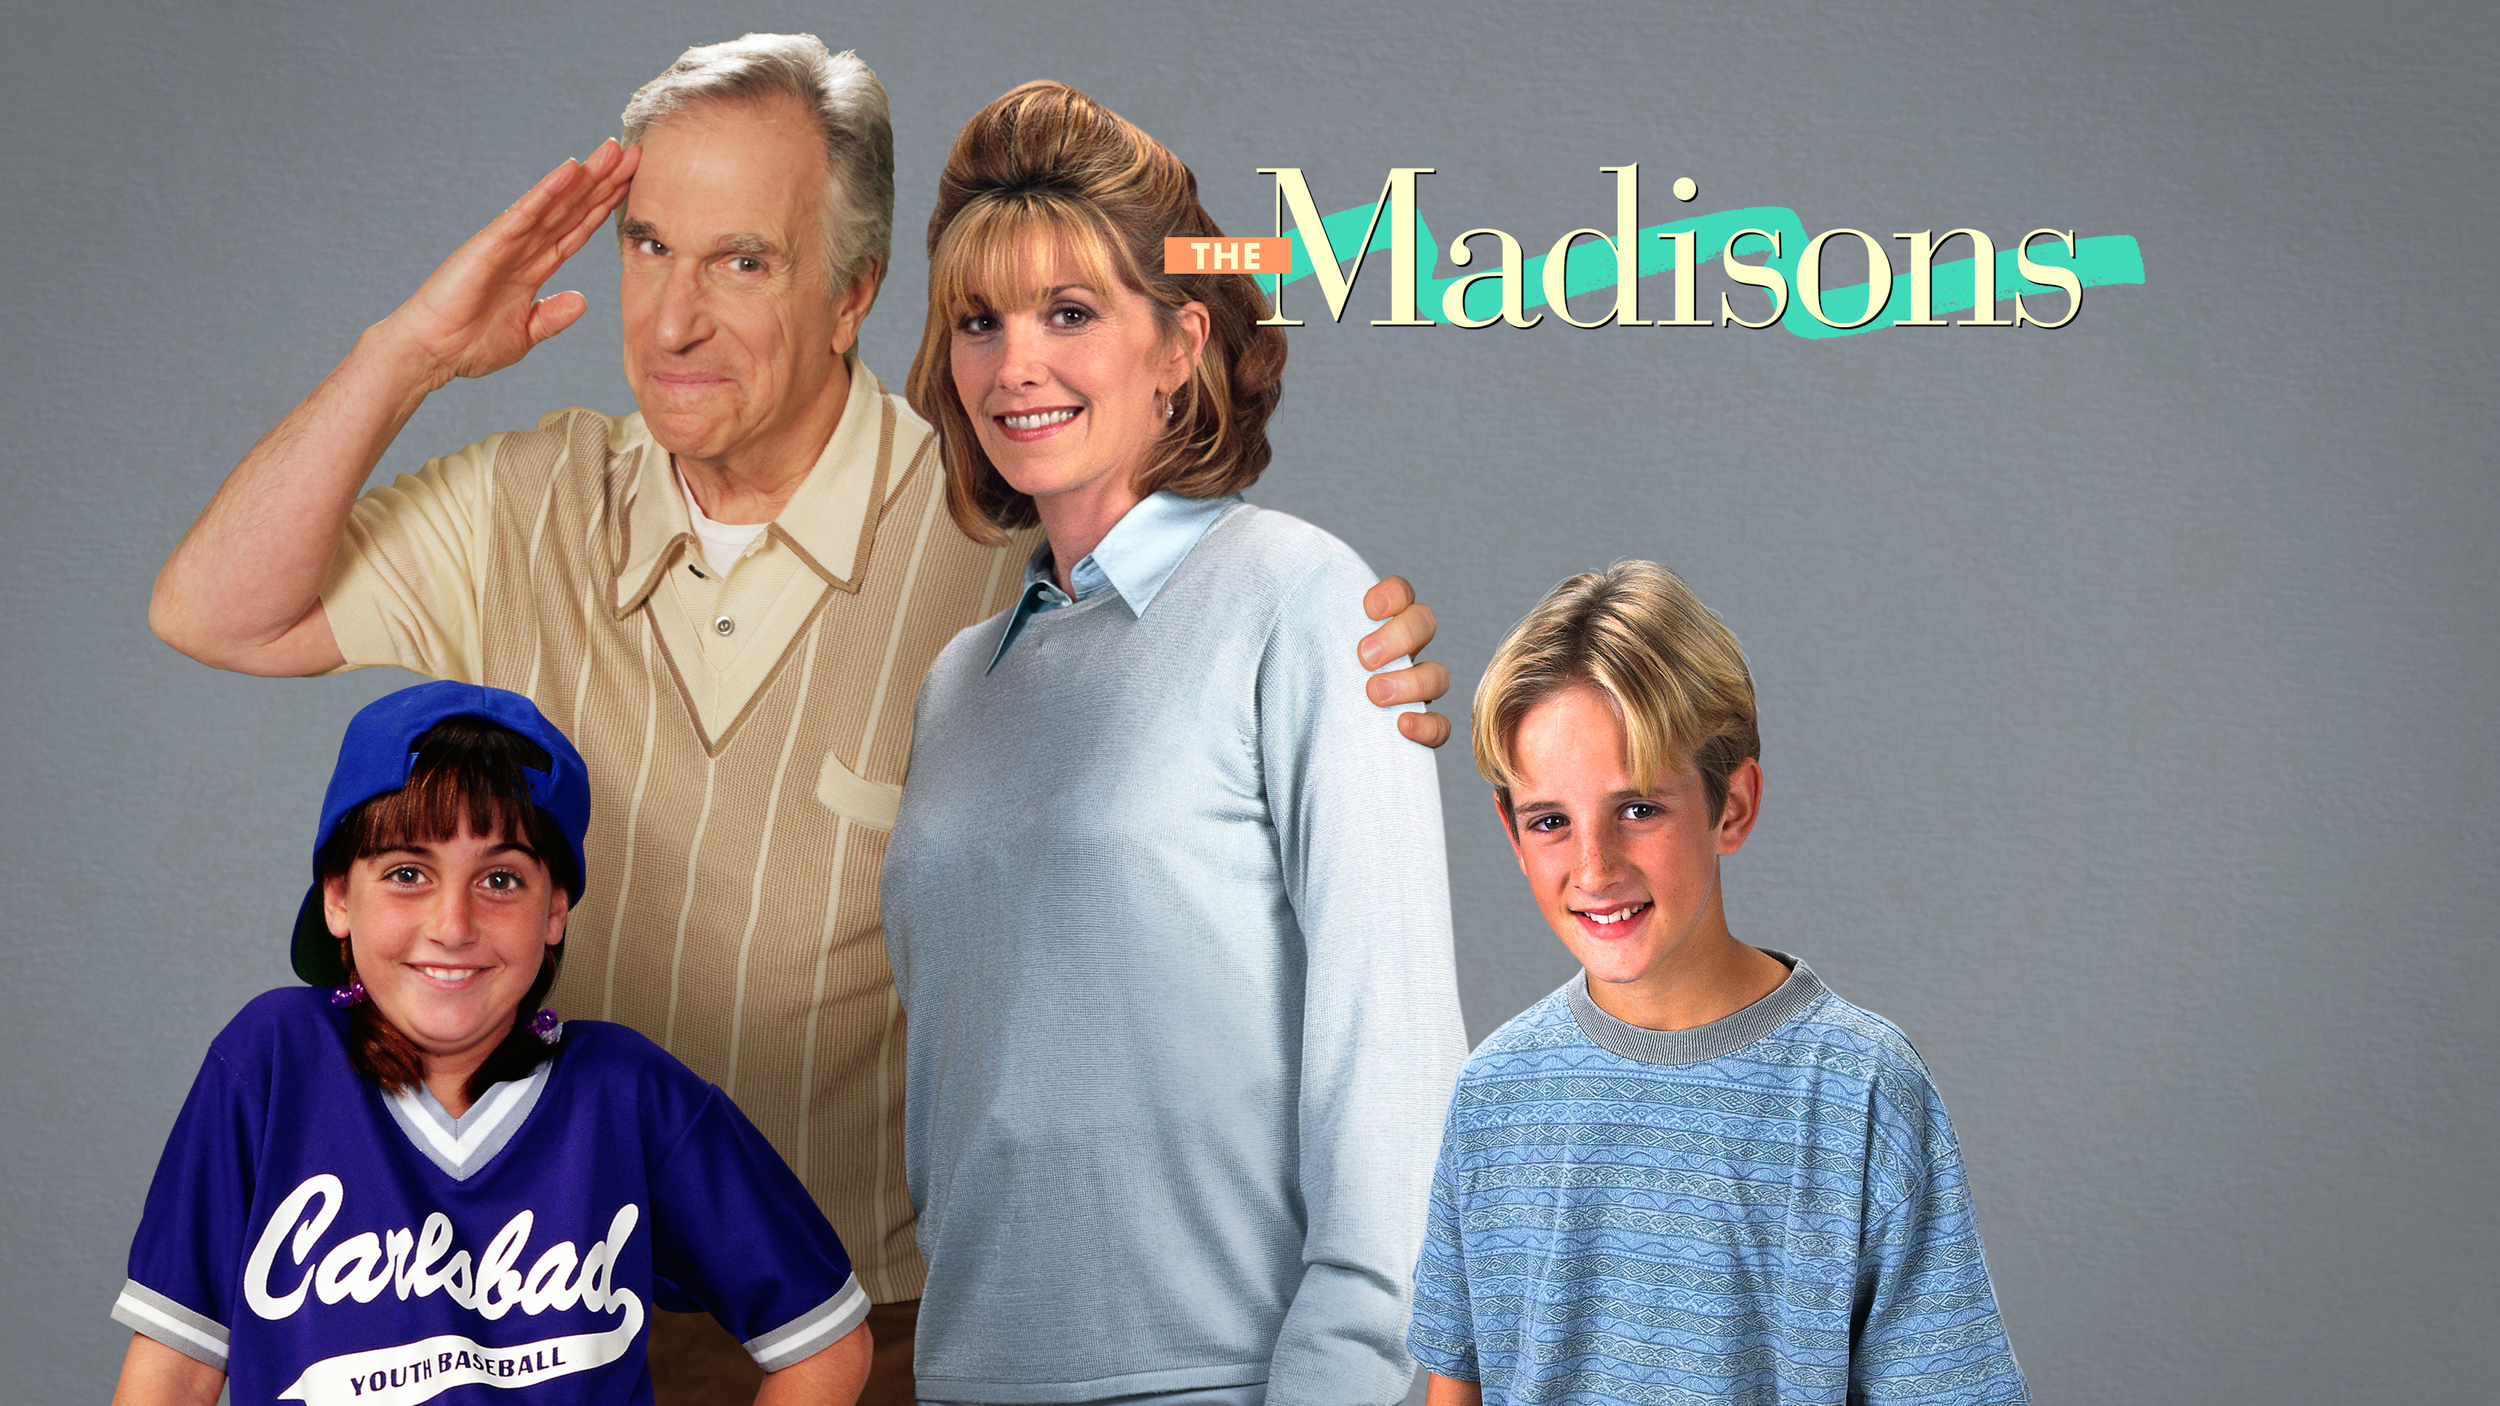 Childrens Hospital/The Madisons title card